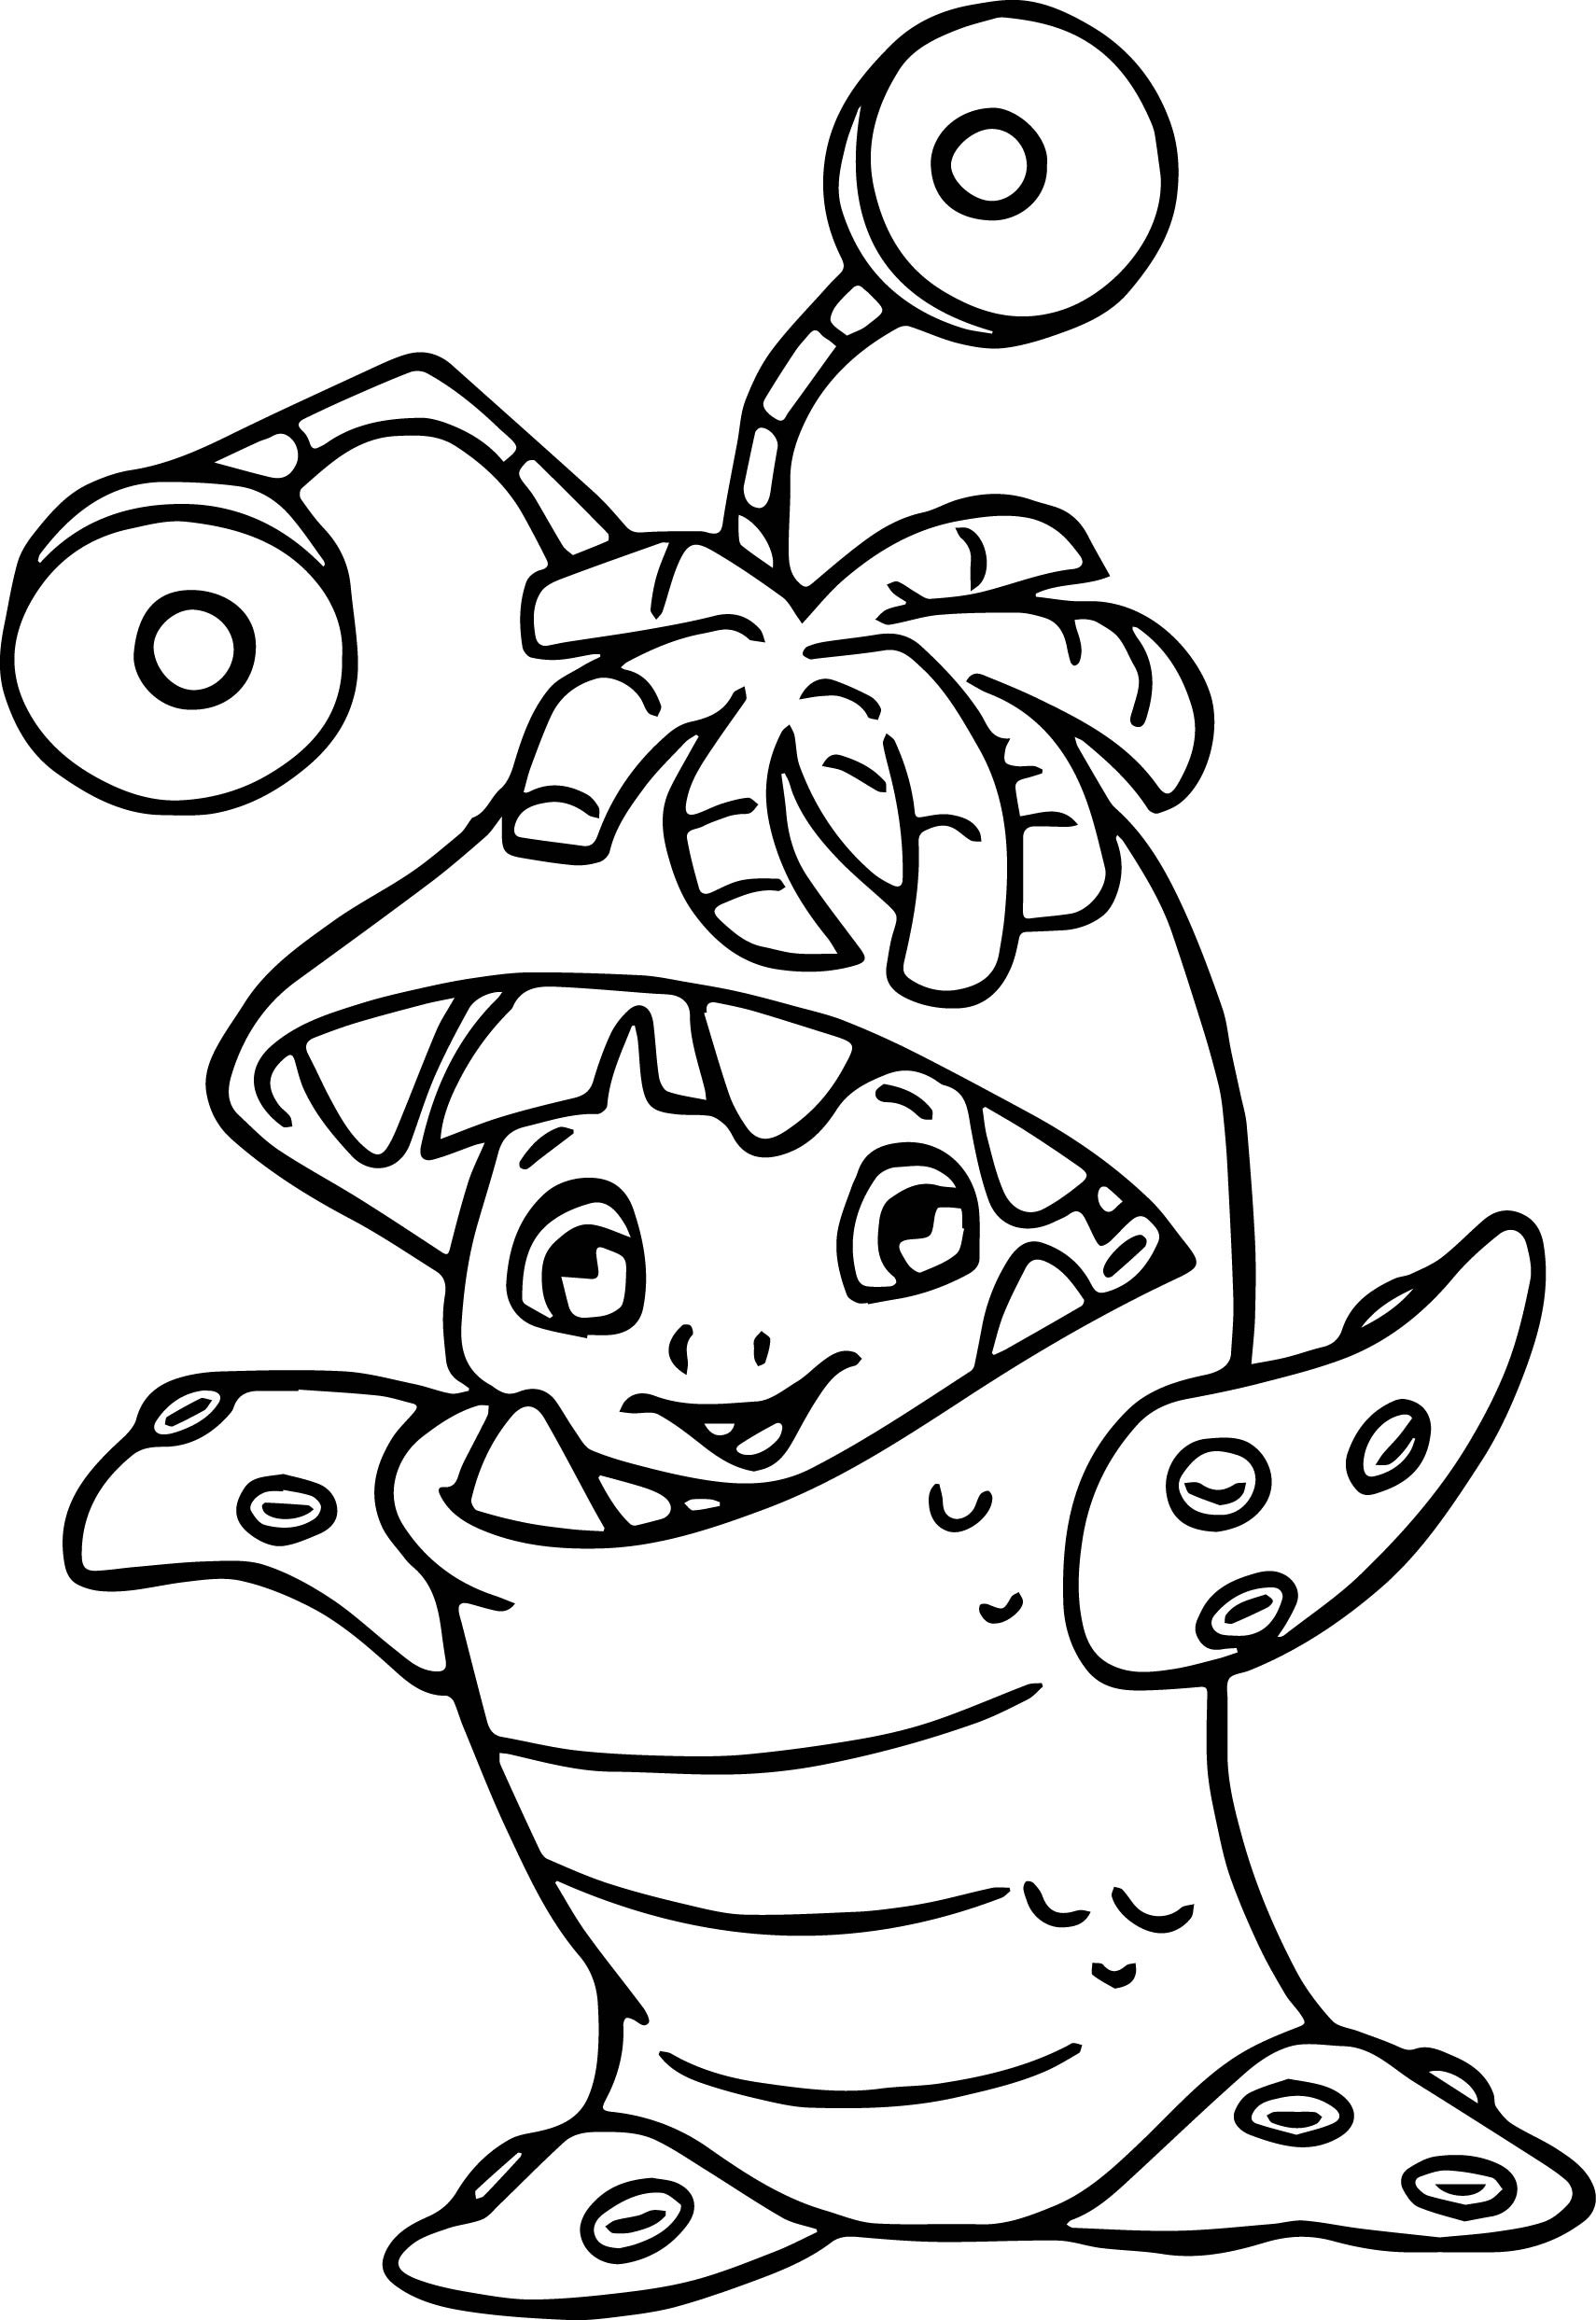 monster coloring sheets monster coloring pages to download and print for free monster coloring sheets